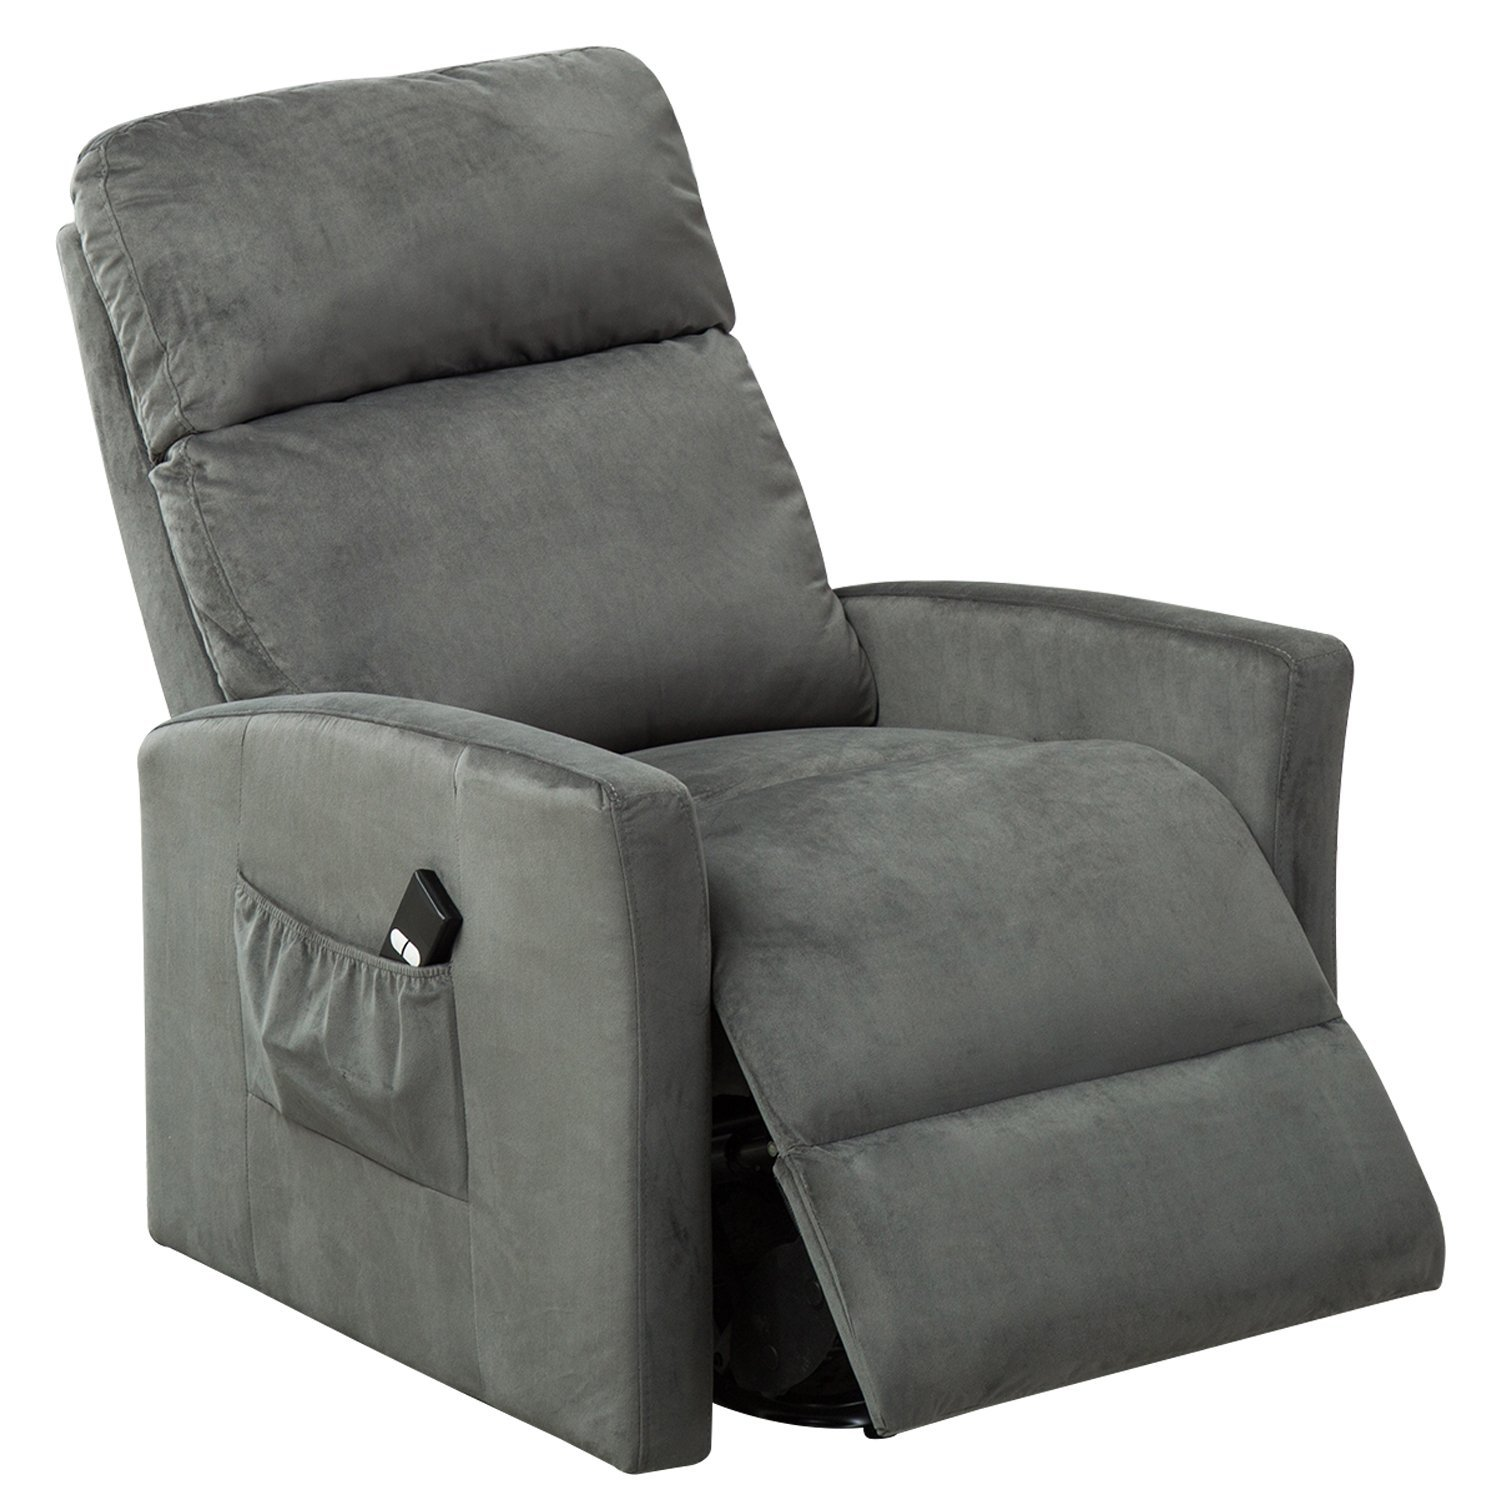 BONZY Lift Chair Power Reclining and Lifting Motion Recliner - Chocolate